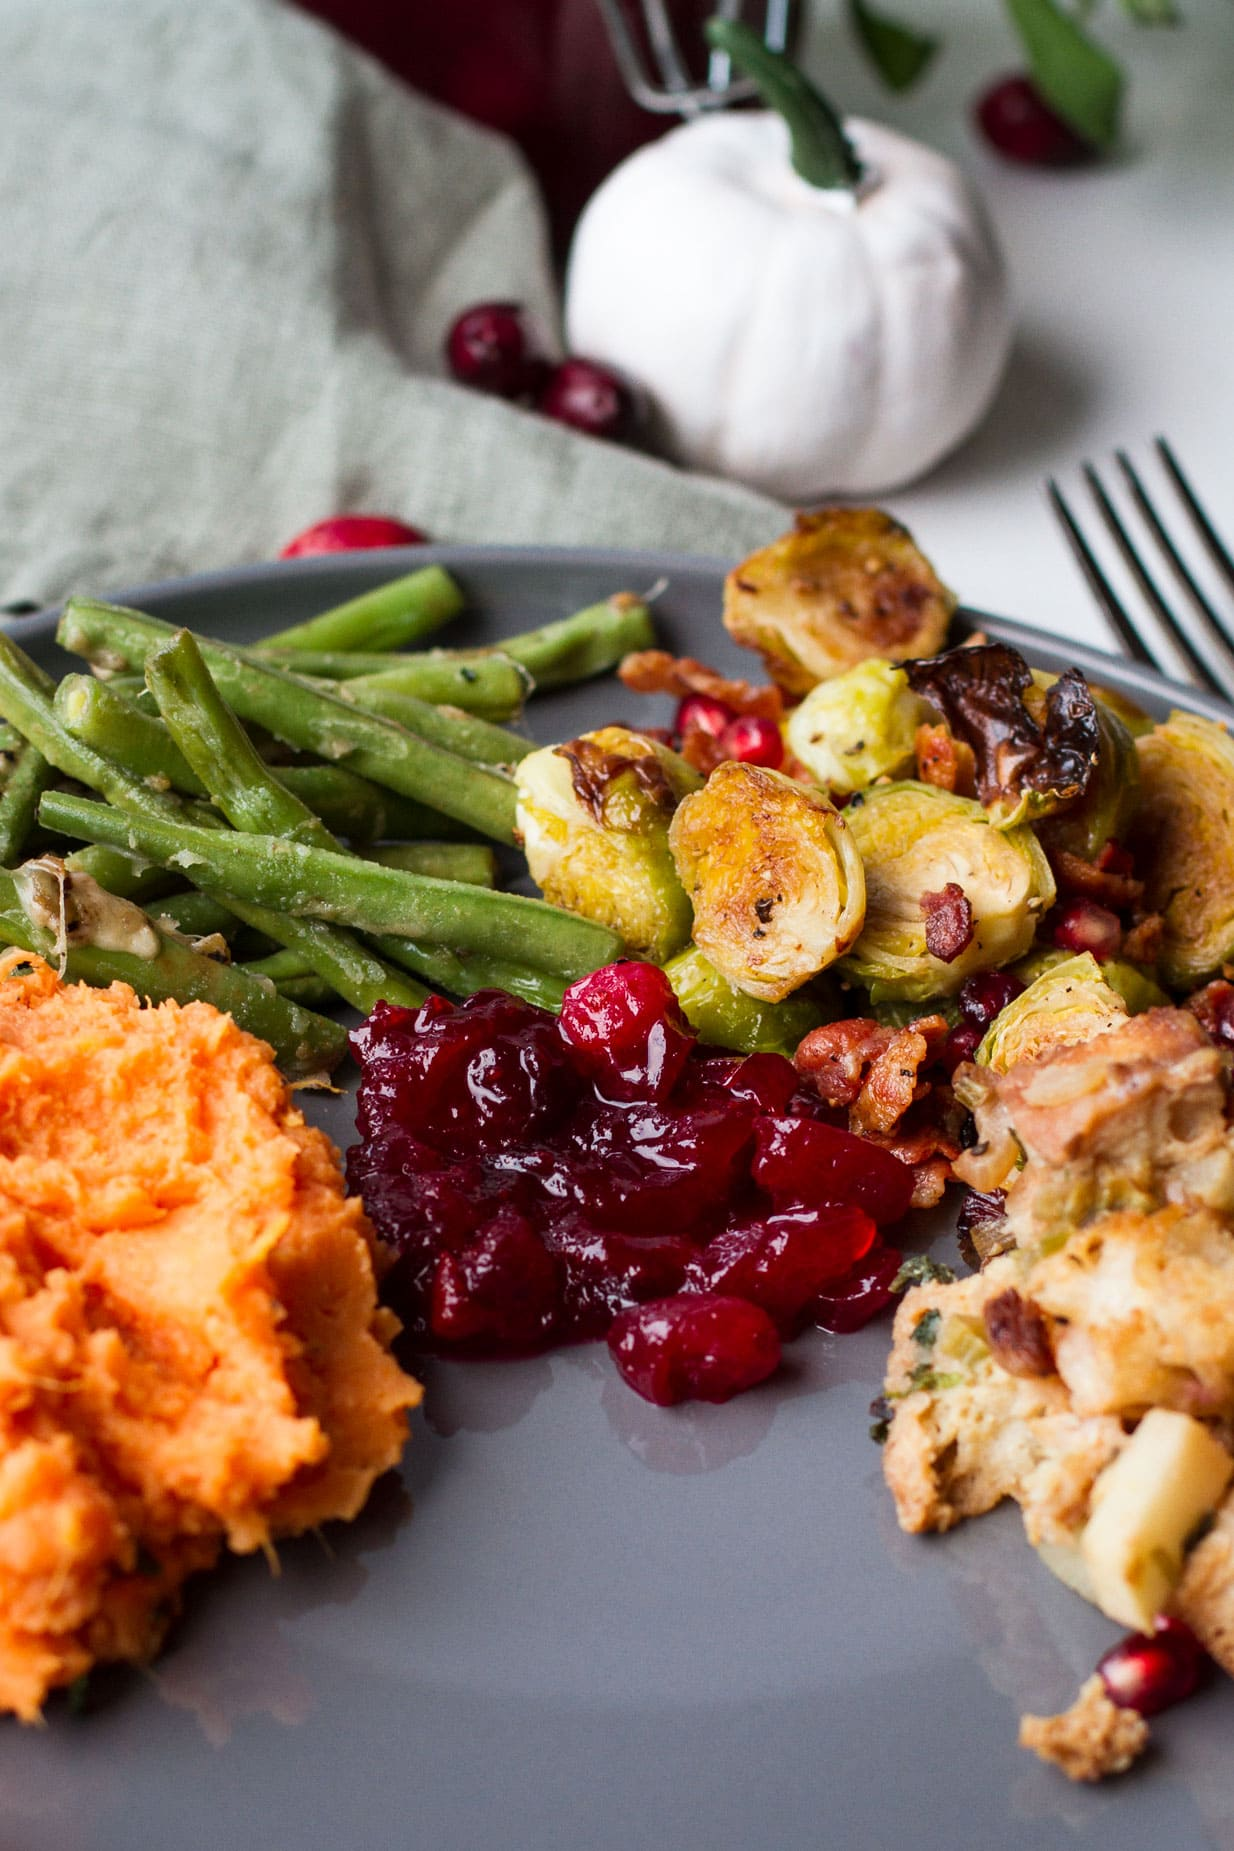 Thanksgiving side dishes; green beans, cranberry sauce, stuffing, sweet potato mash, brussels sprouts.